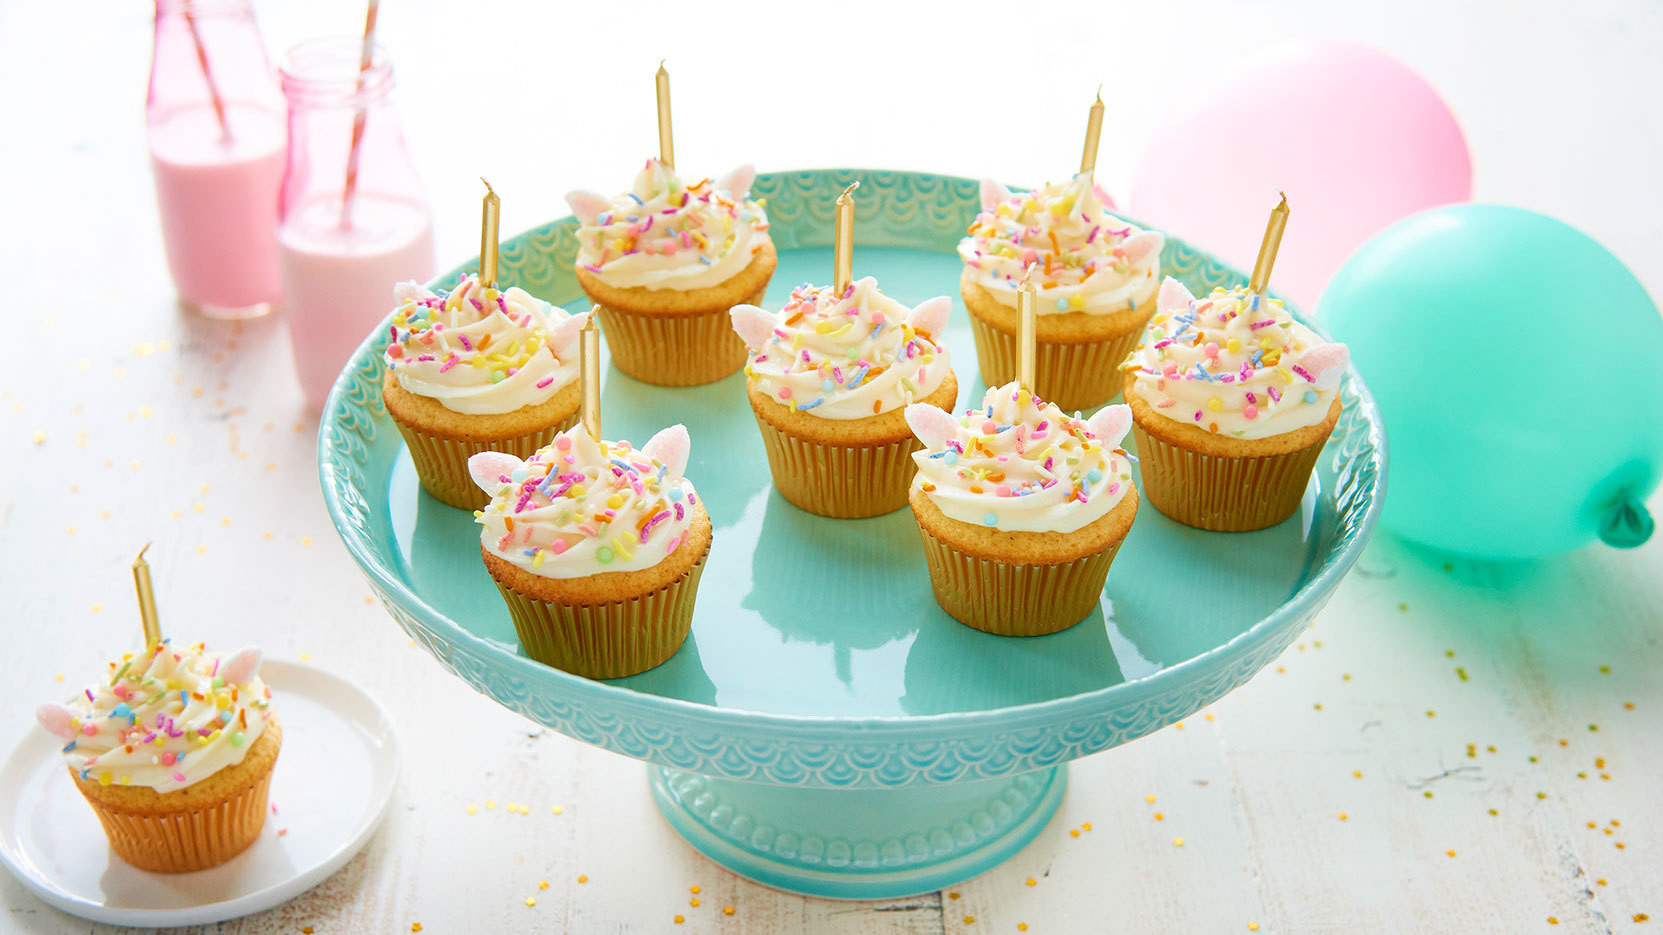 Ideas For Unicorn Party  Magical Unicorn Birthday Party Ideas for Kids EatingWell